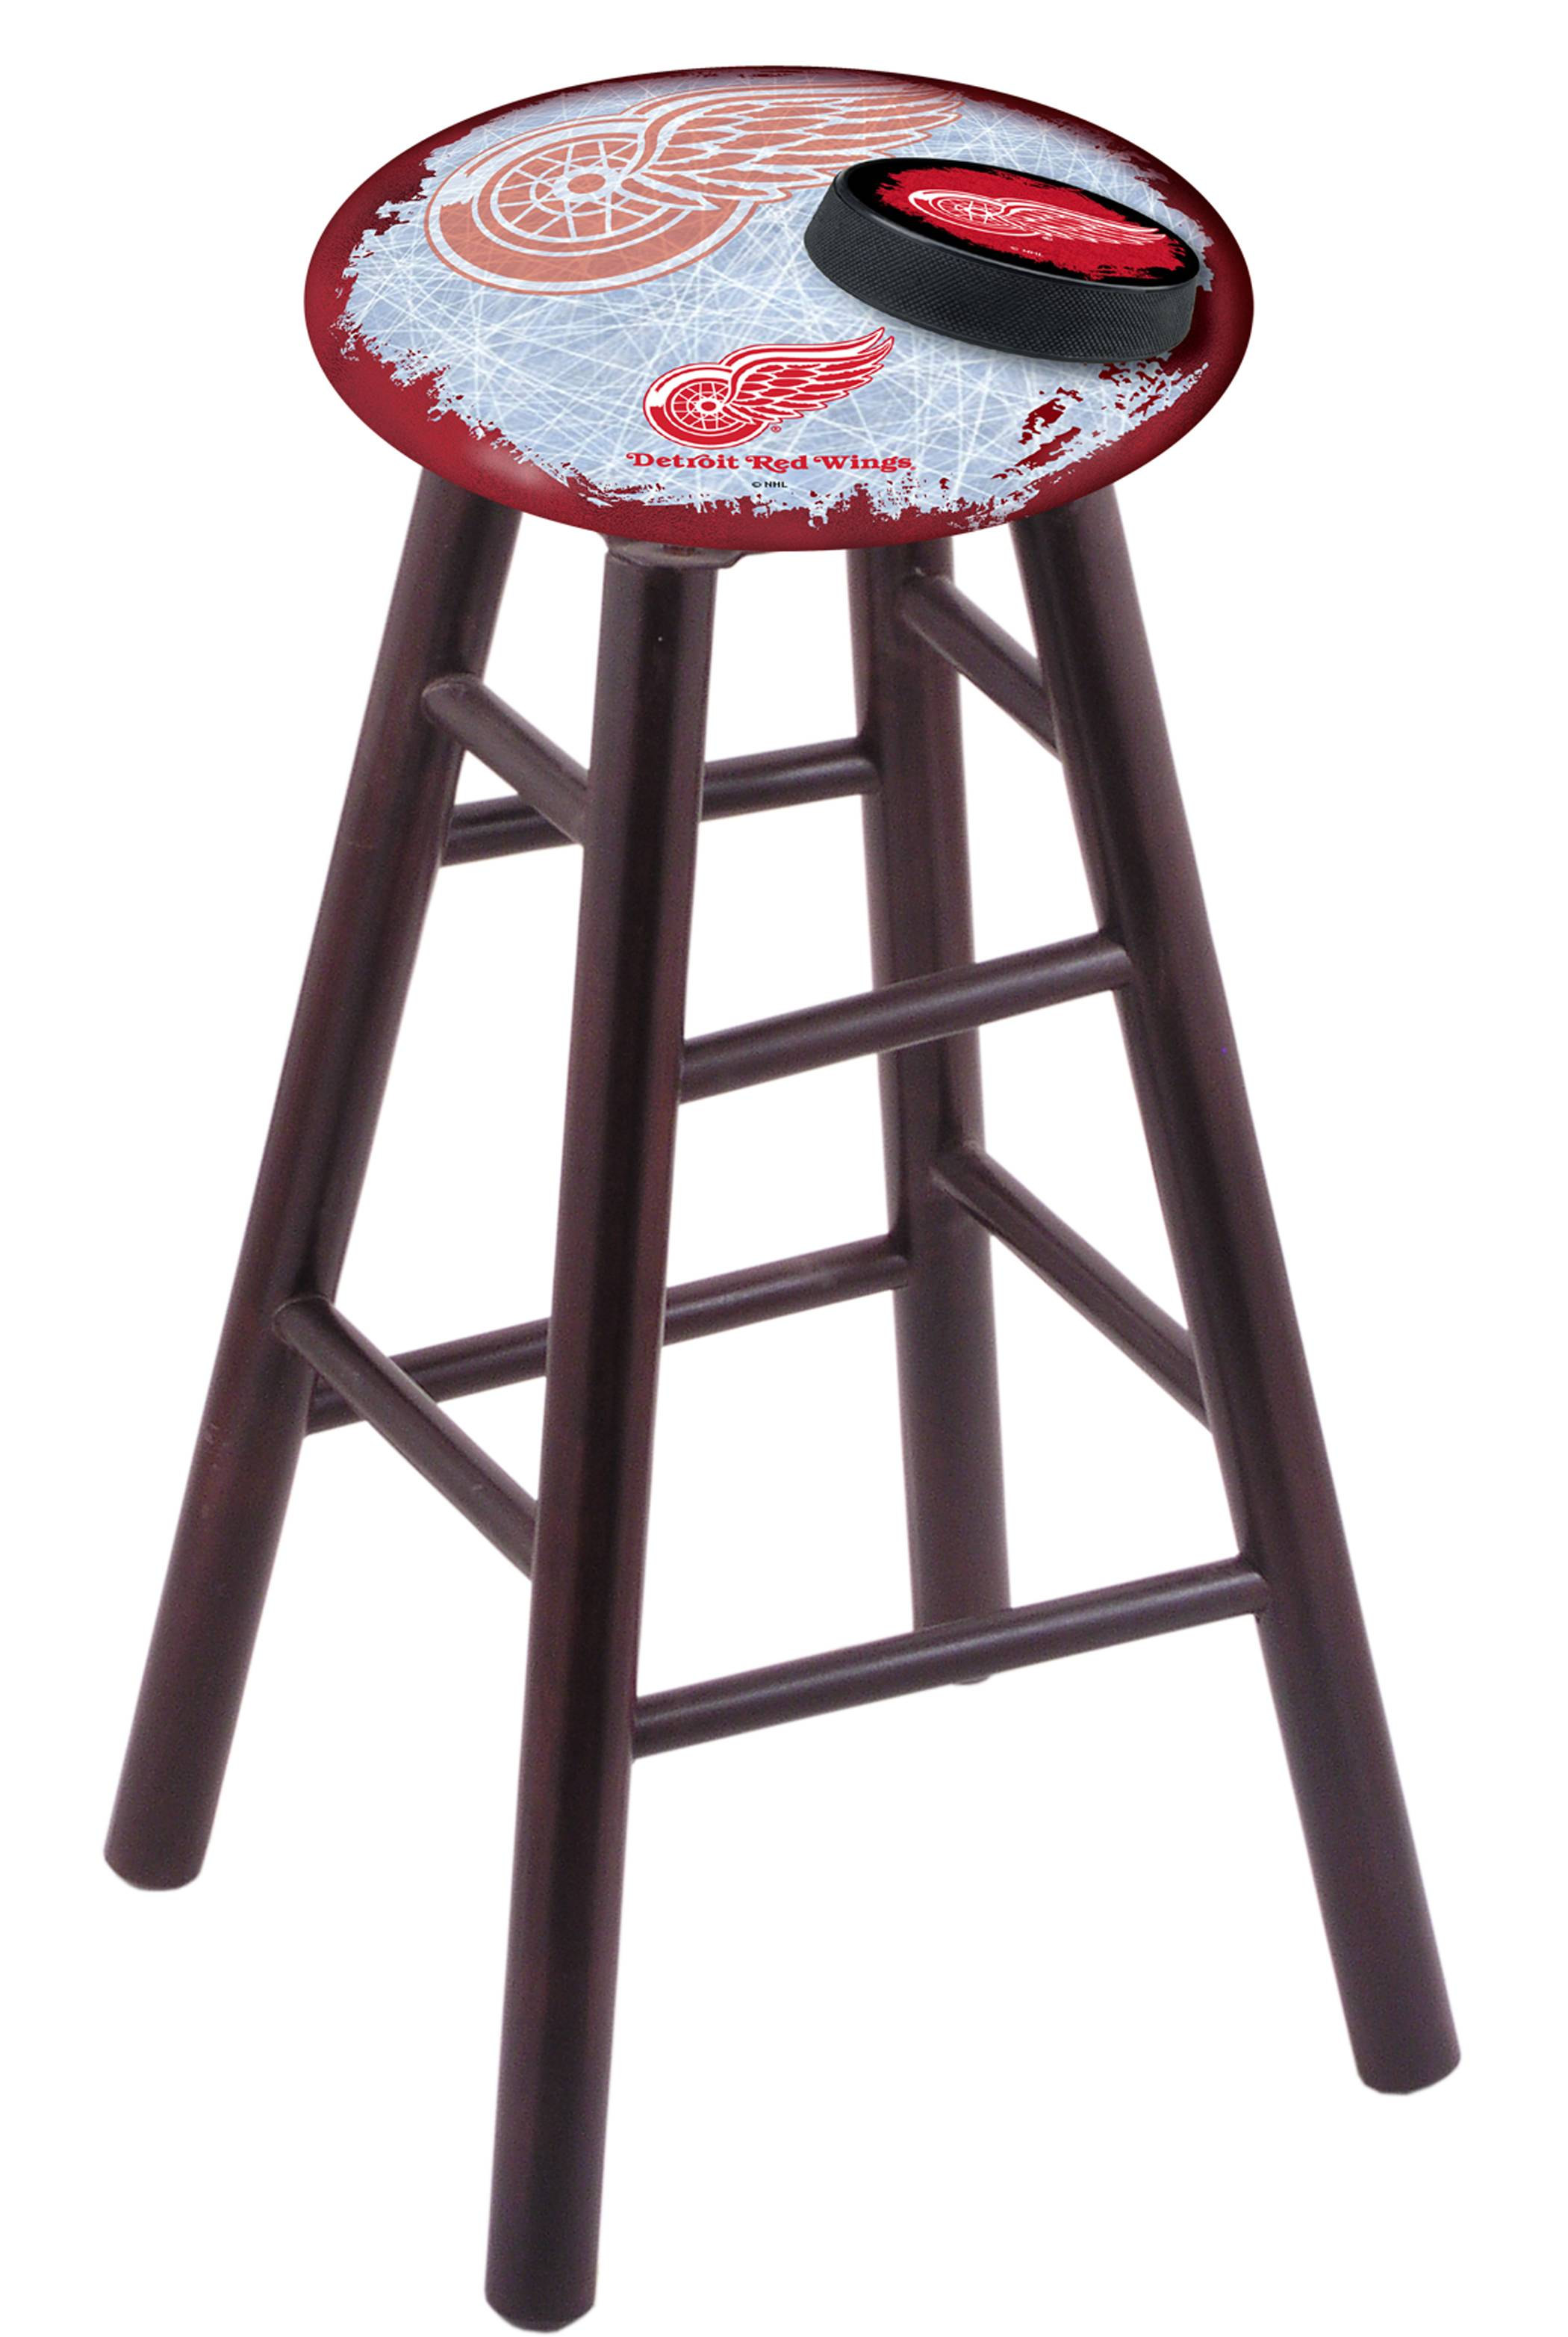 Detroit Red Wings Maple Wood Bar Stool